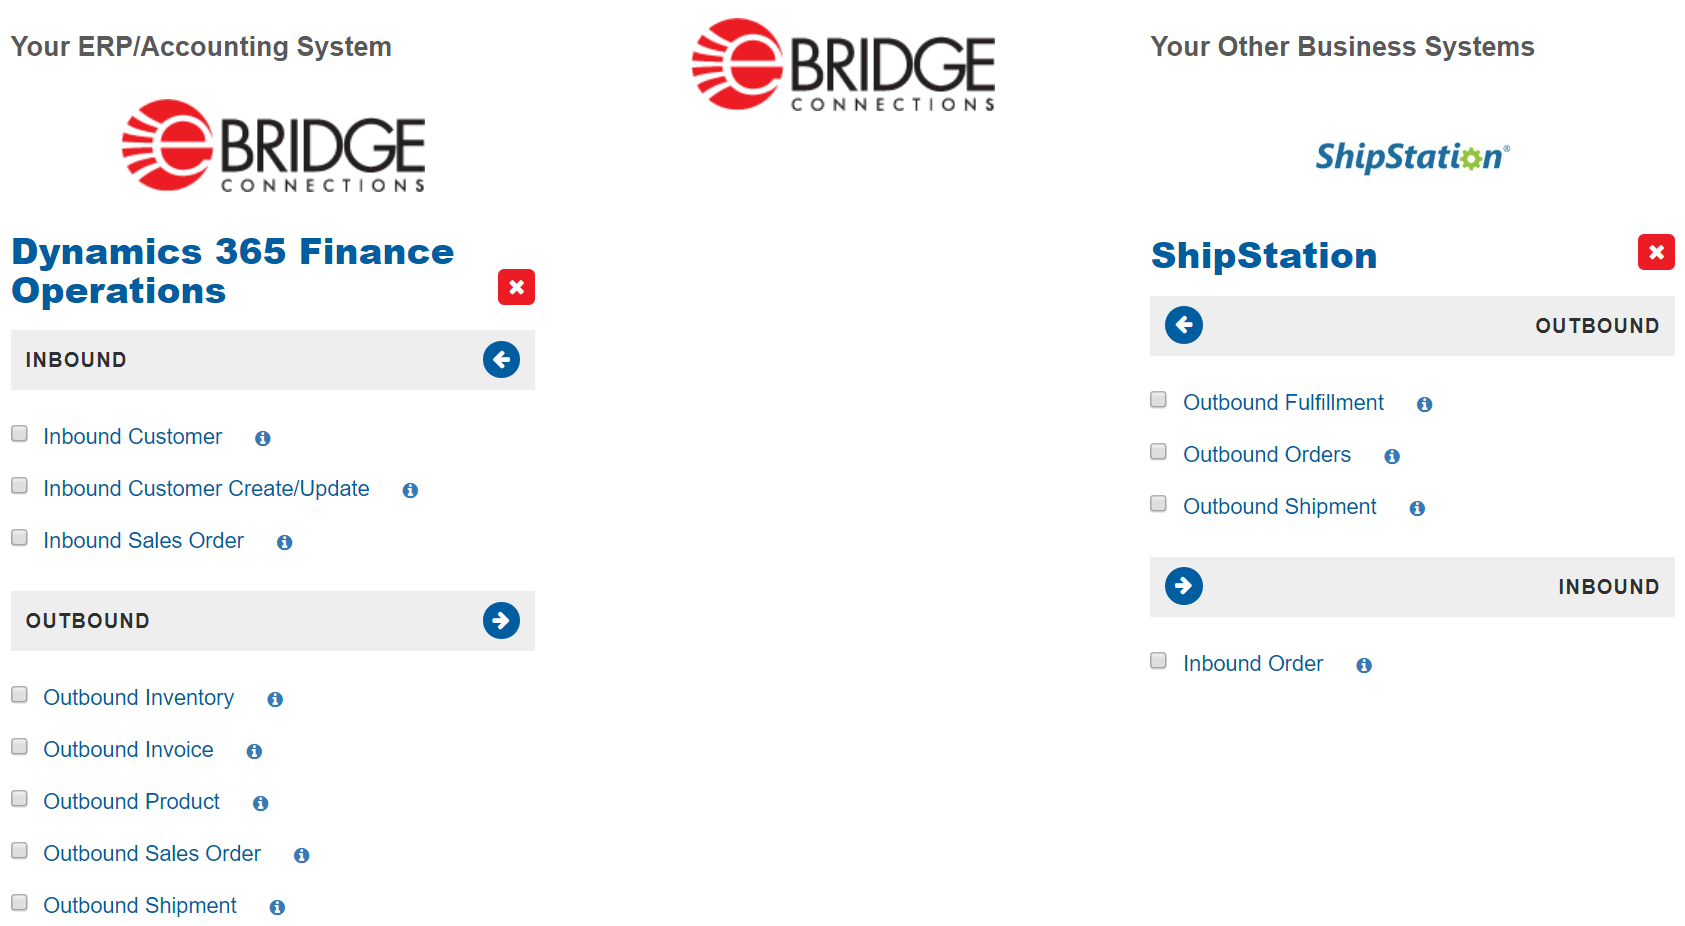 ShipStation-Microsoft-Dynamcs-365-Finance-Operations-Integration-Solution-eBridge.PNG